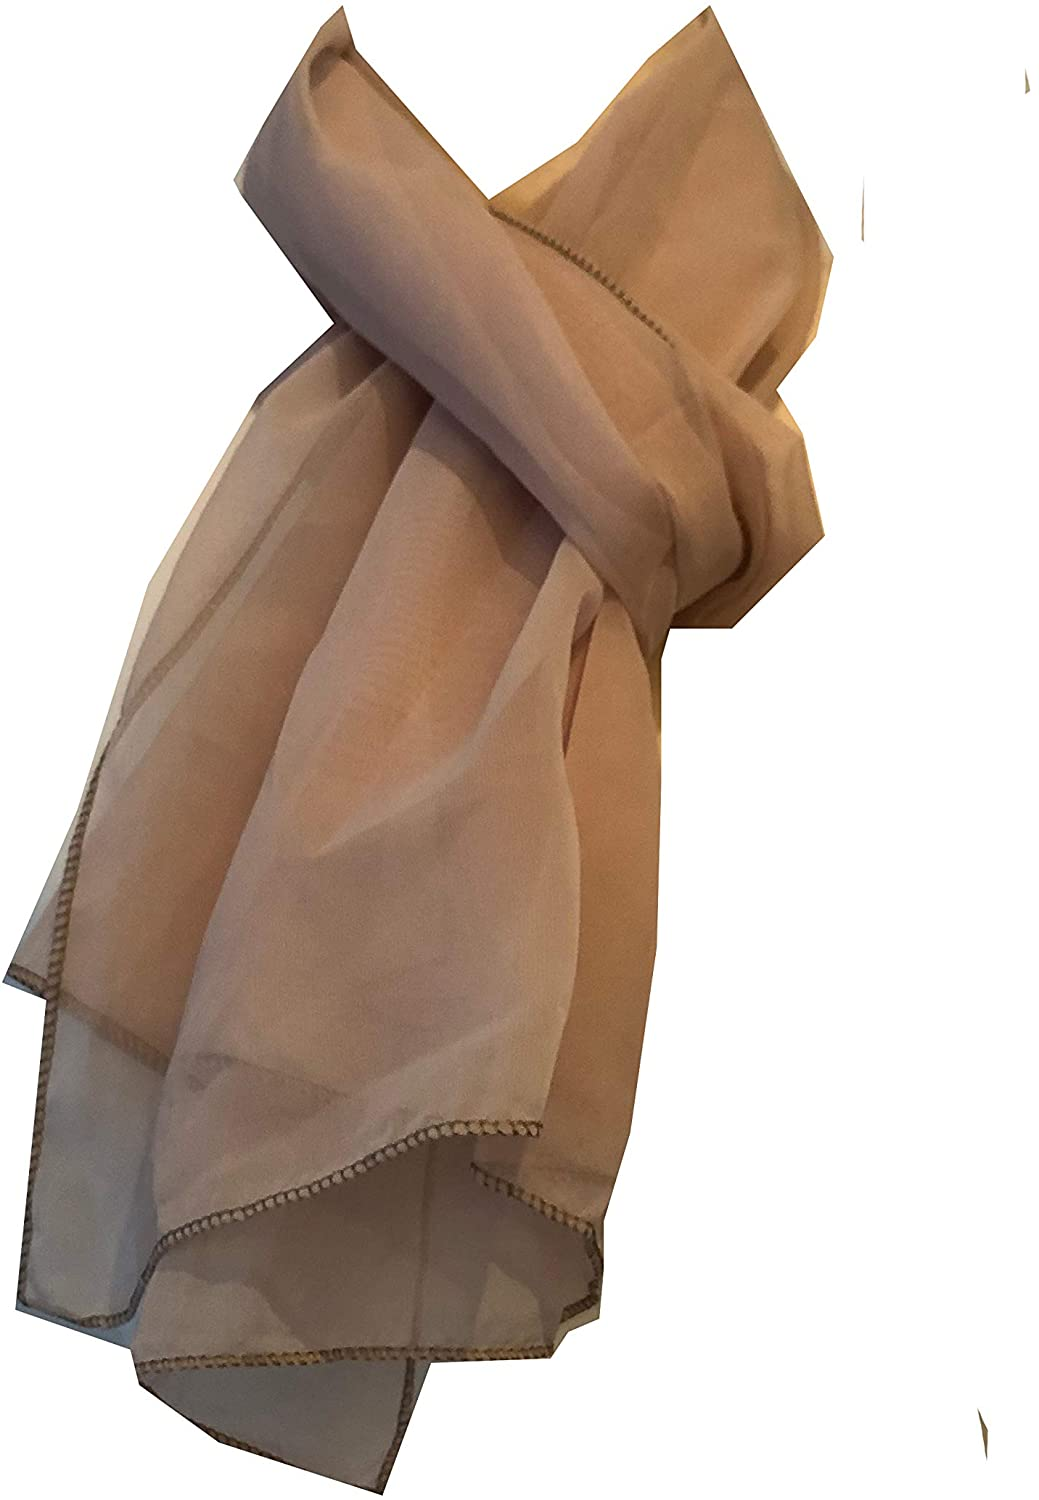 Plain Beige Chiffon Style Scarf Thin Pretty Scarf Great for Any Outfit Lovely Gift